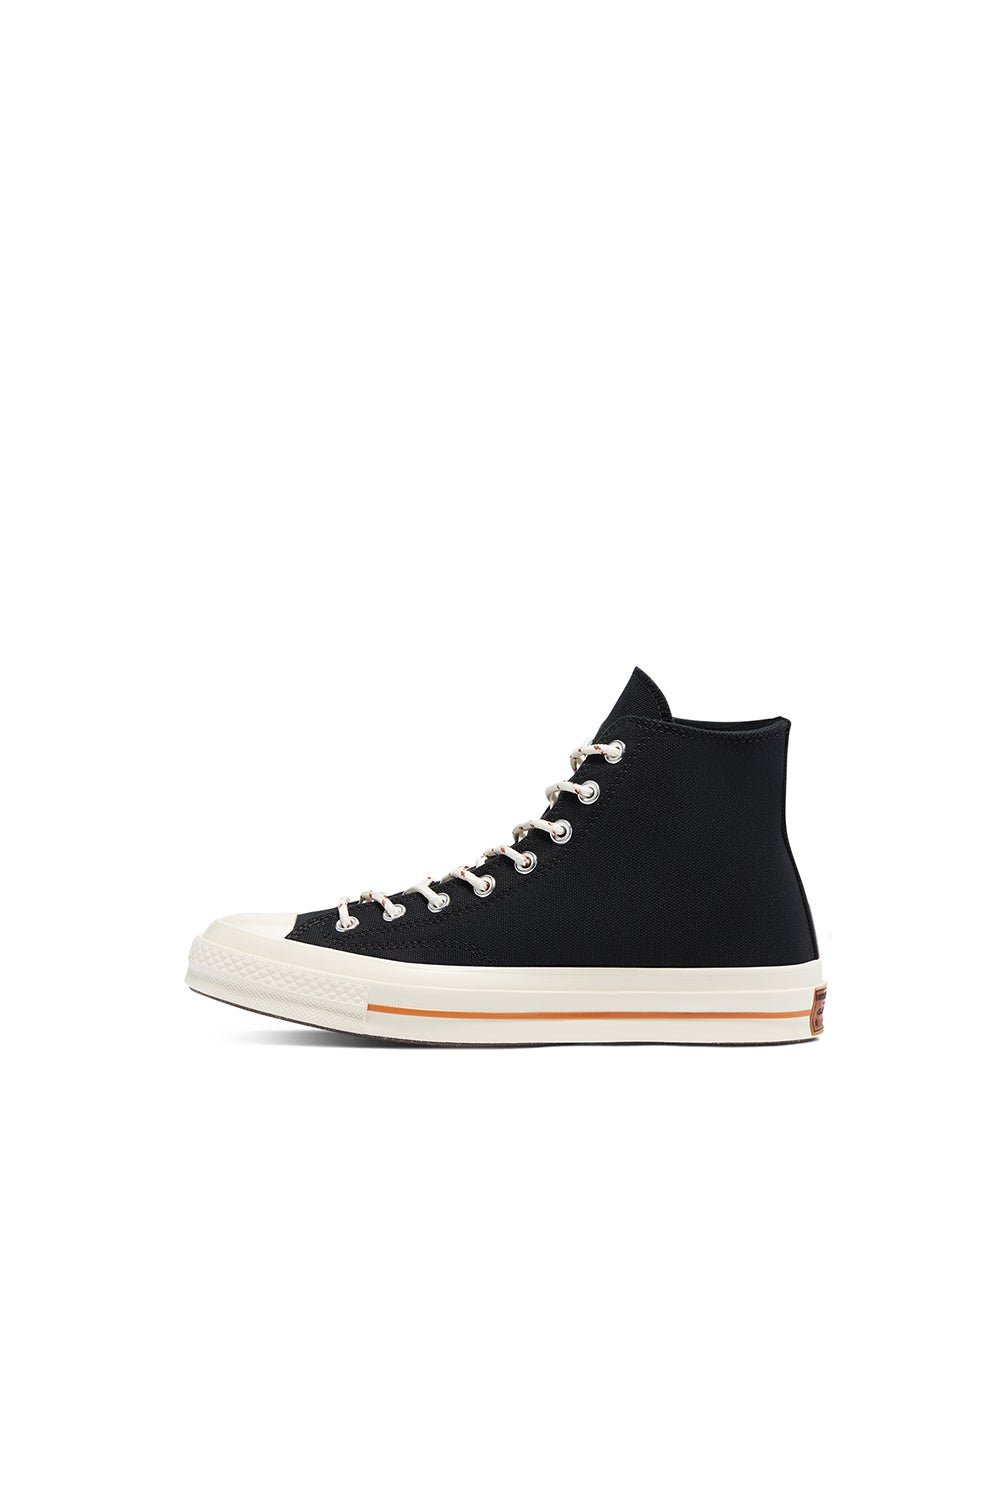 Converse Chuck Taylor All Star 70 Cork High Black